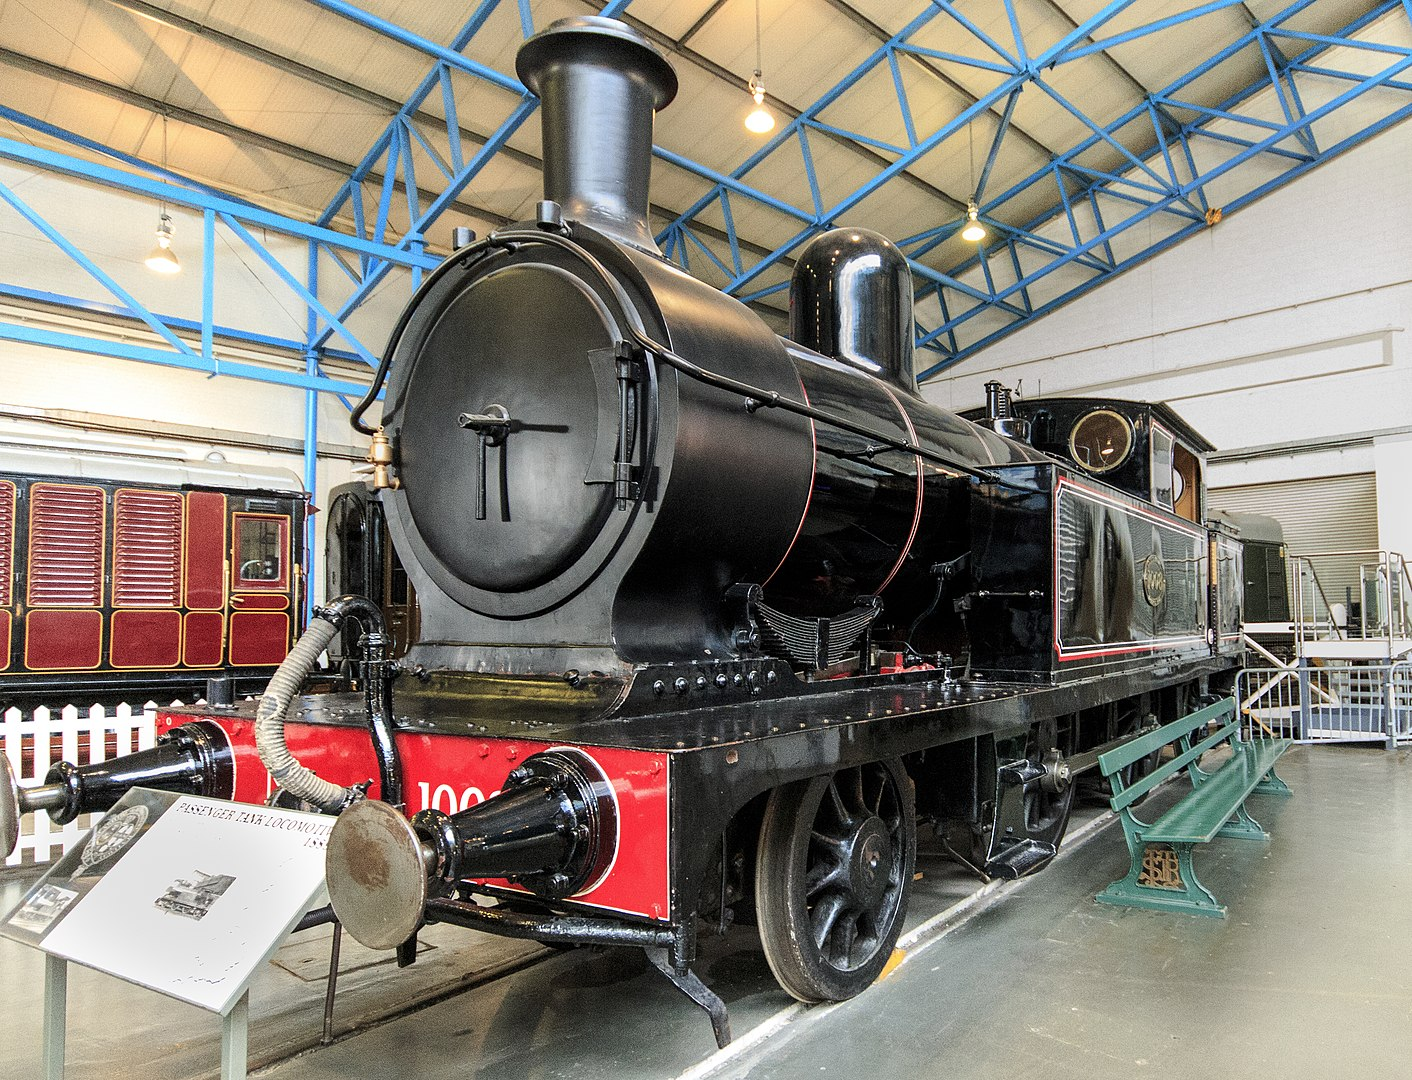 1008 at the National Railway Museum, York in June 2015. ©Barry Skeates